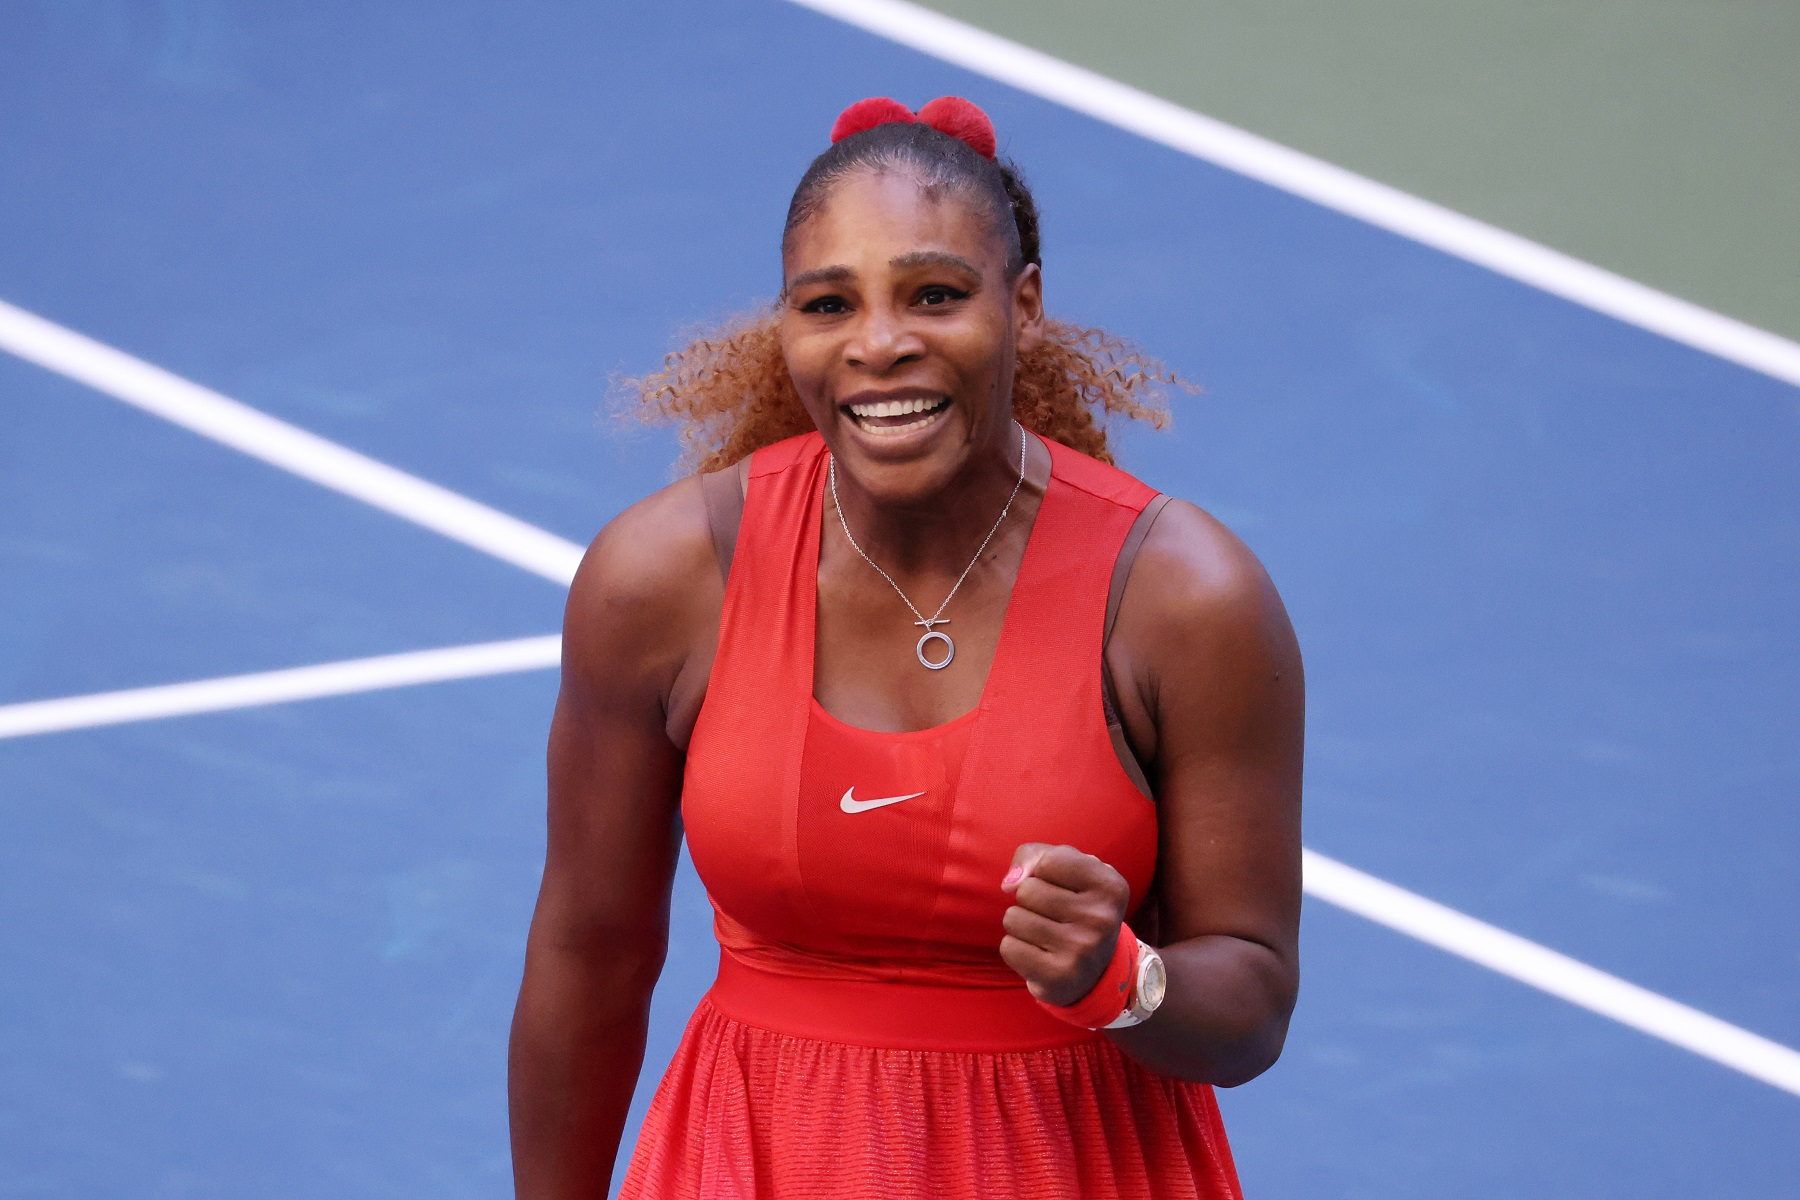 Serena WIlliams, U.S. Open